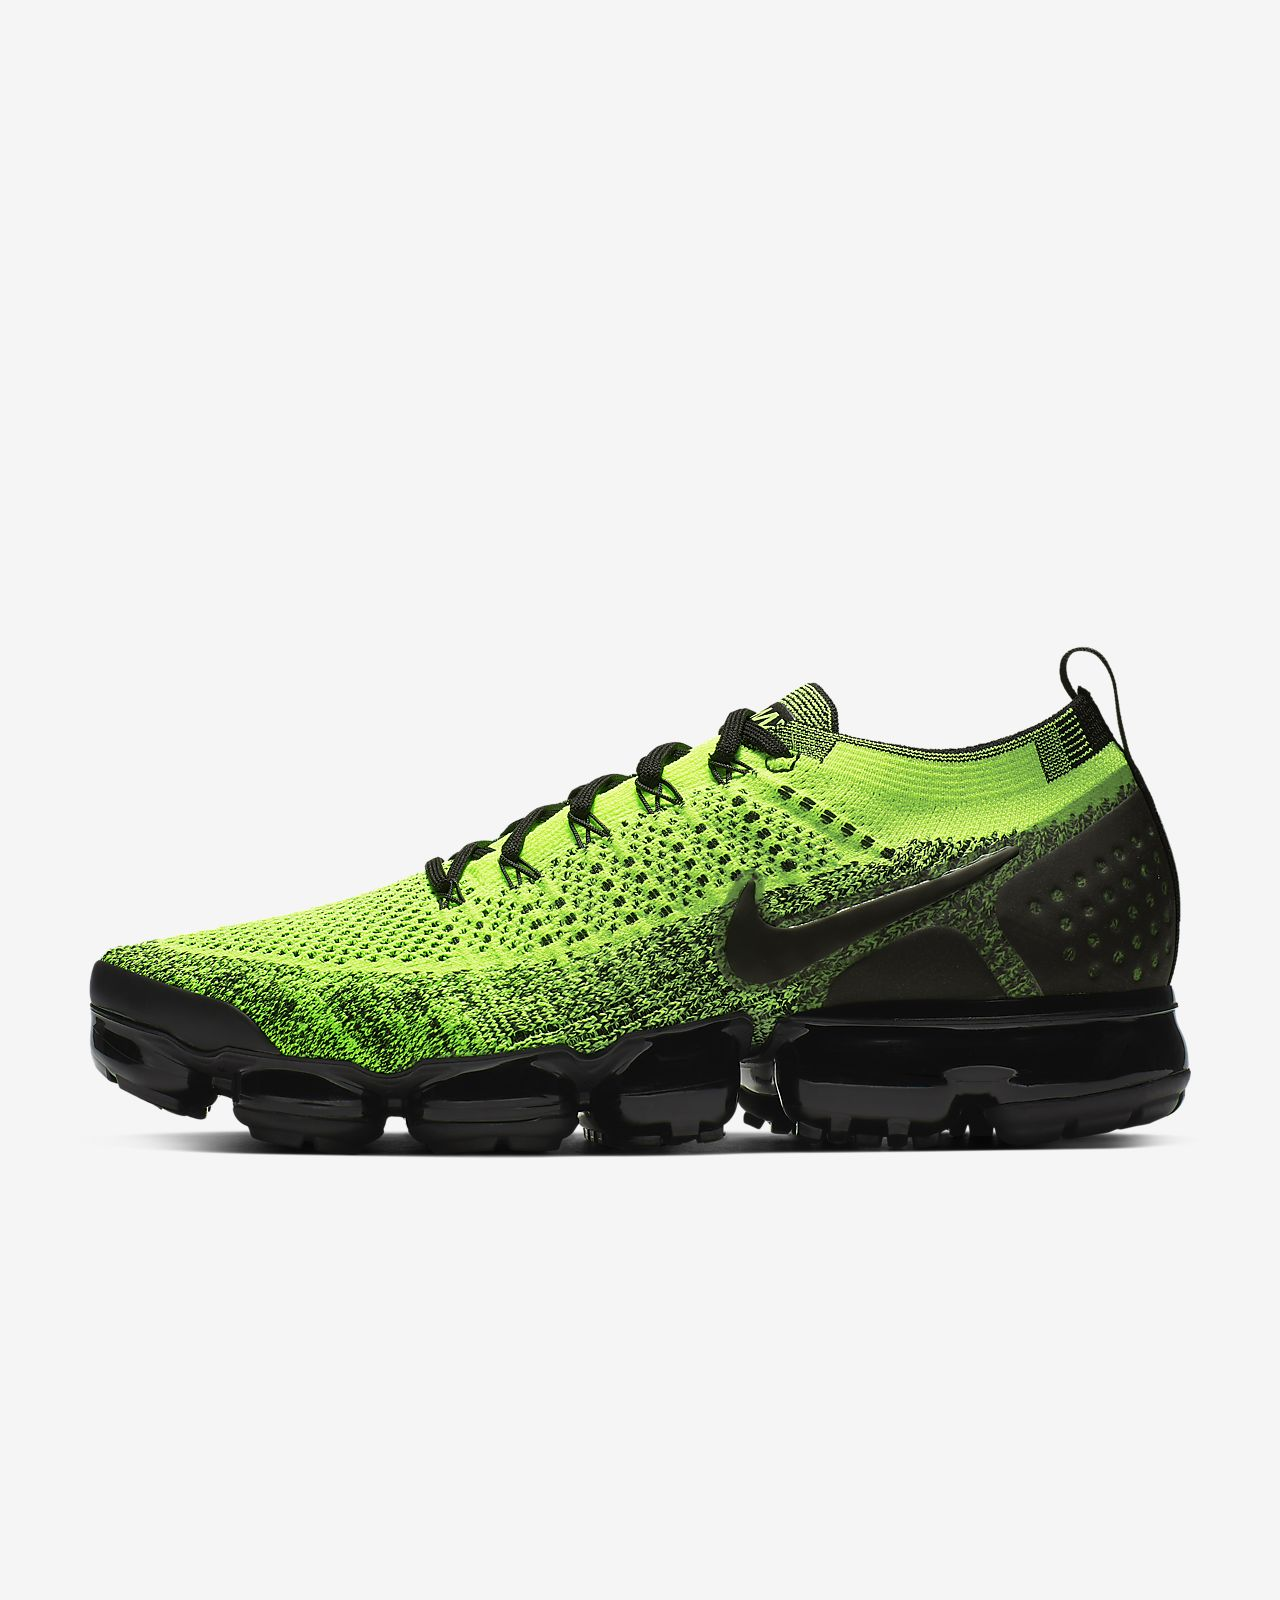 reputable site e6960 7b9c8 Shoe. Nike Air VaporMax Flyknit 2